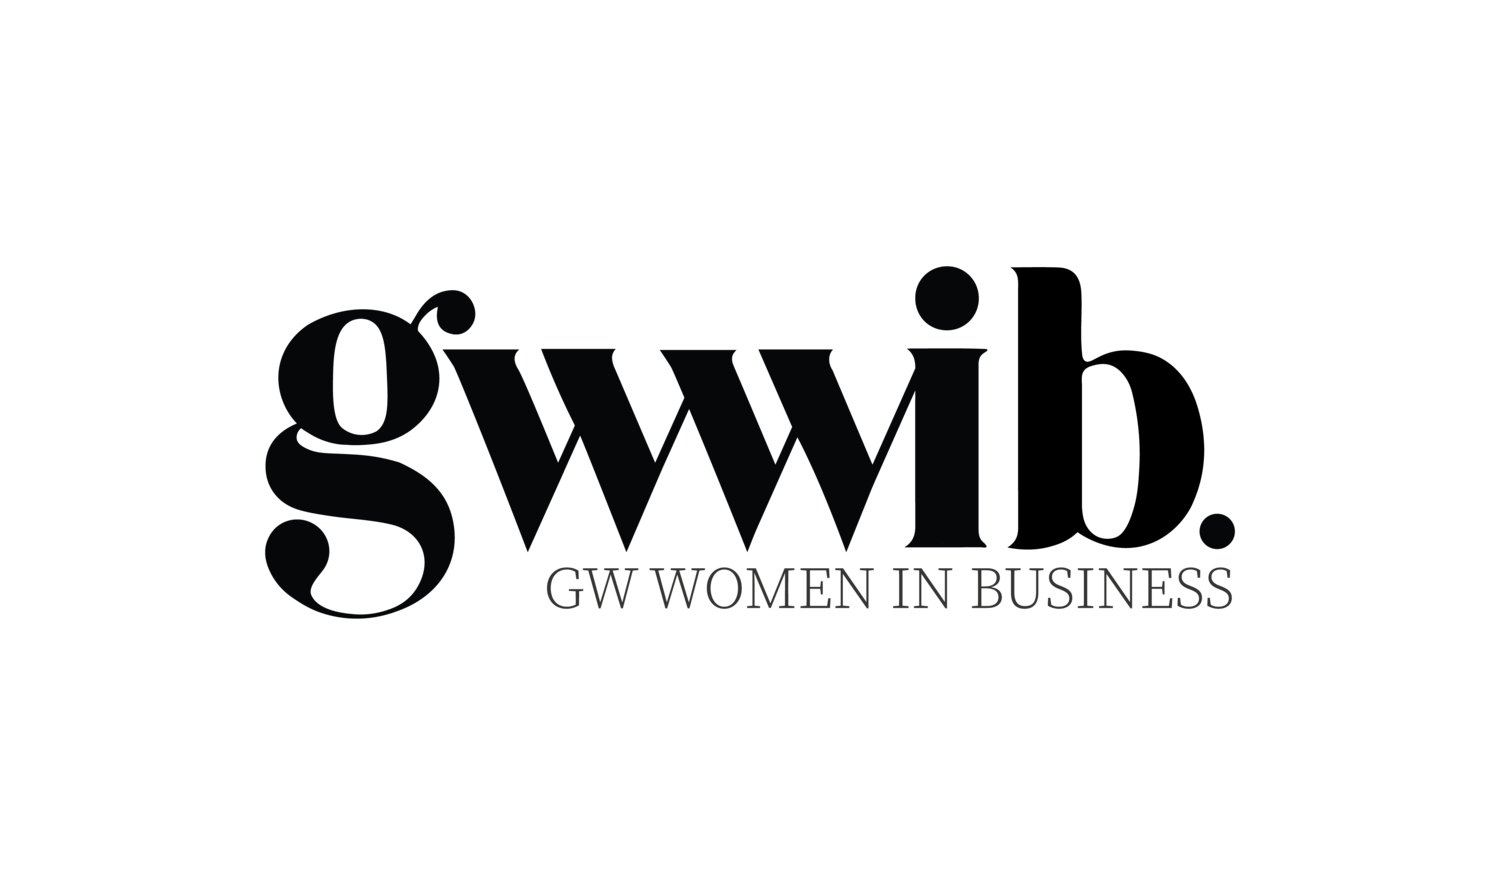 GW Women in Business